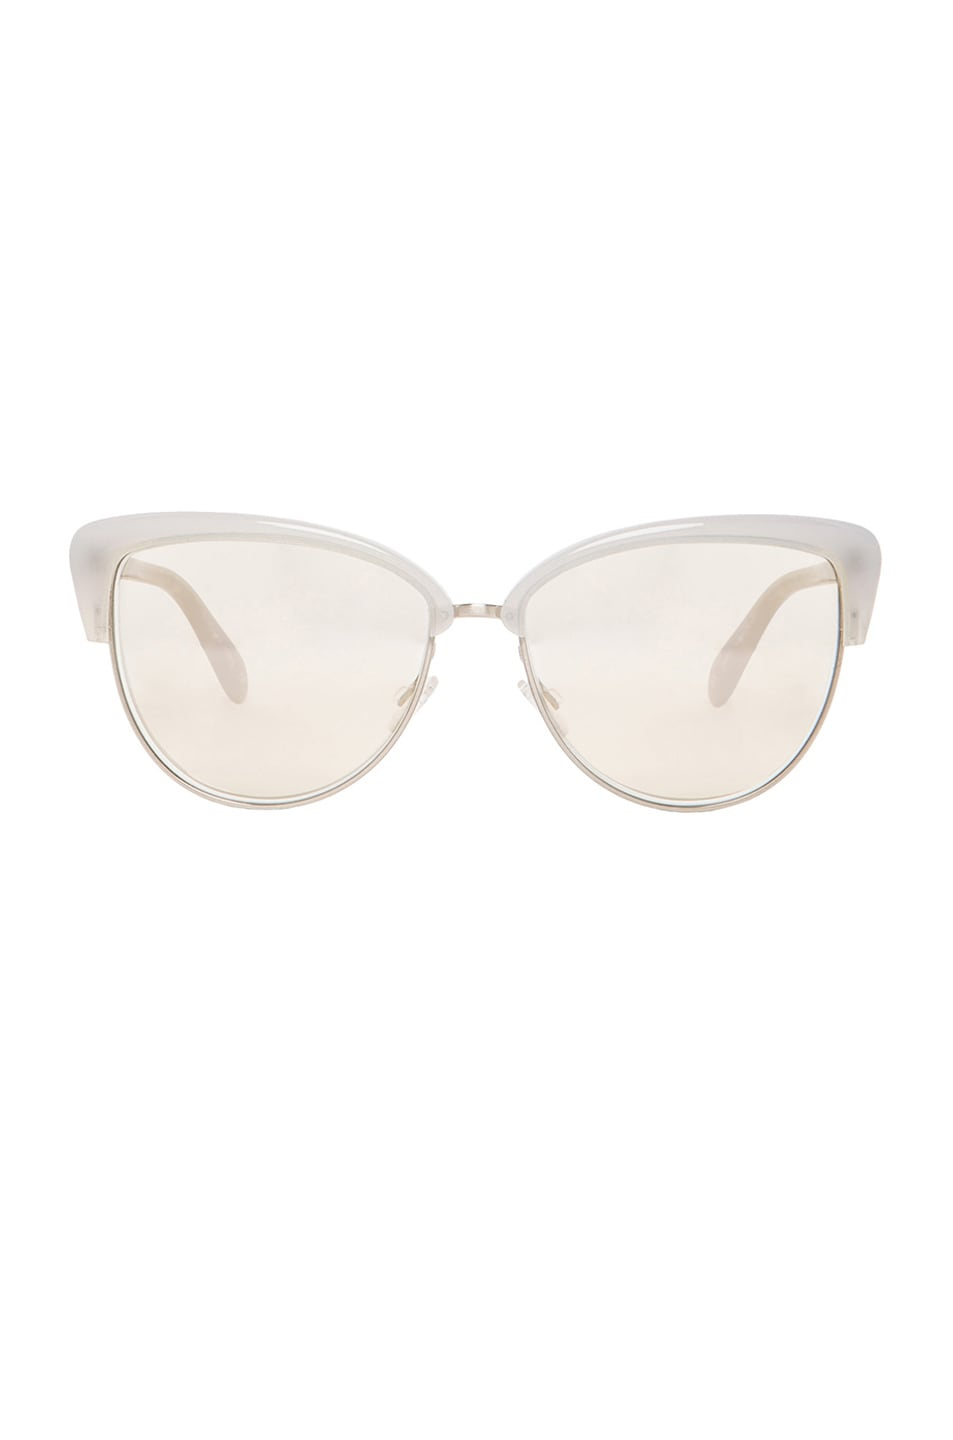 Image 1 of Oliver Peoples Alisha Sunglasses in Soft Pearl & Opal Flash